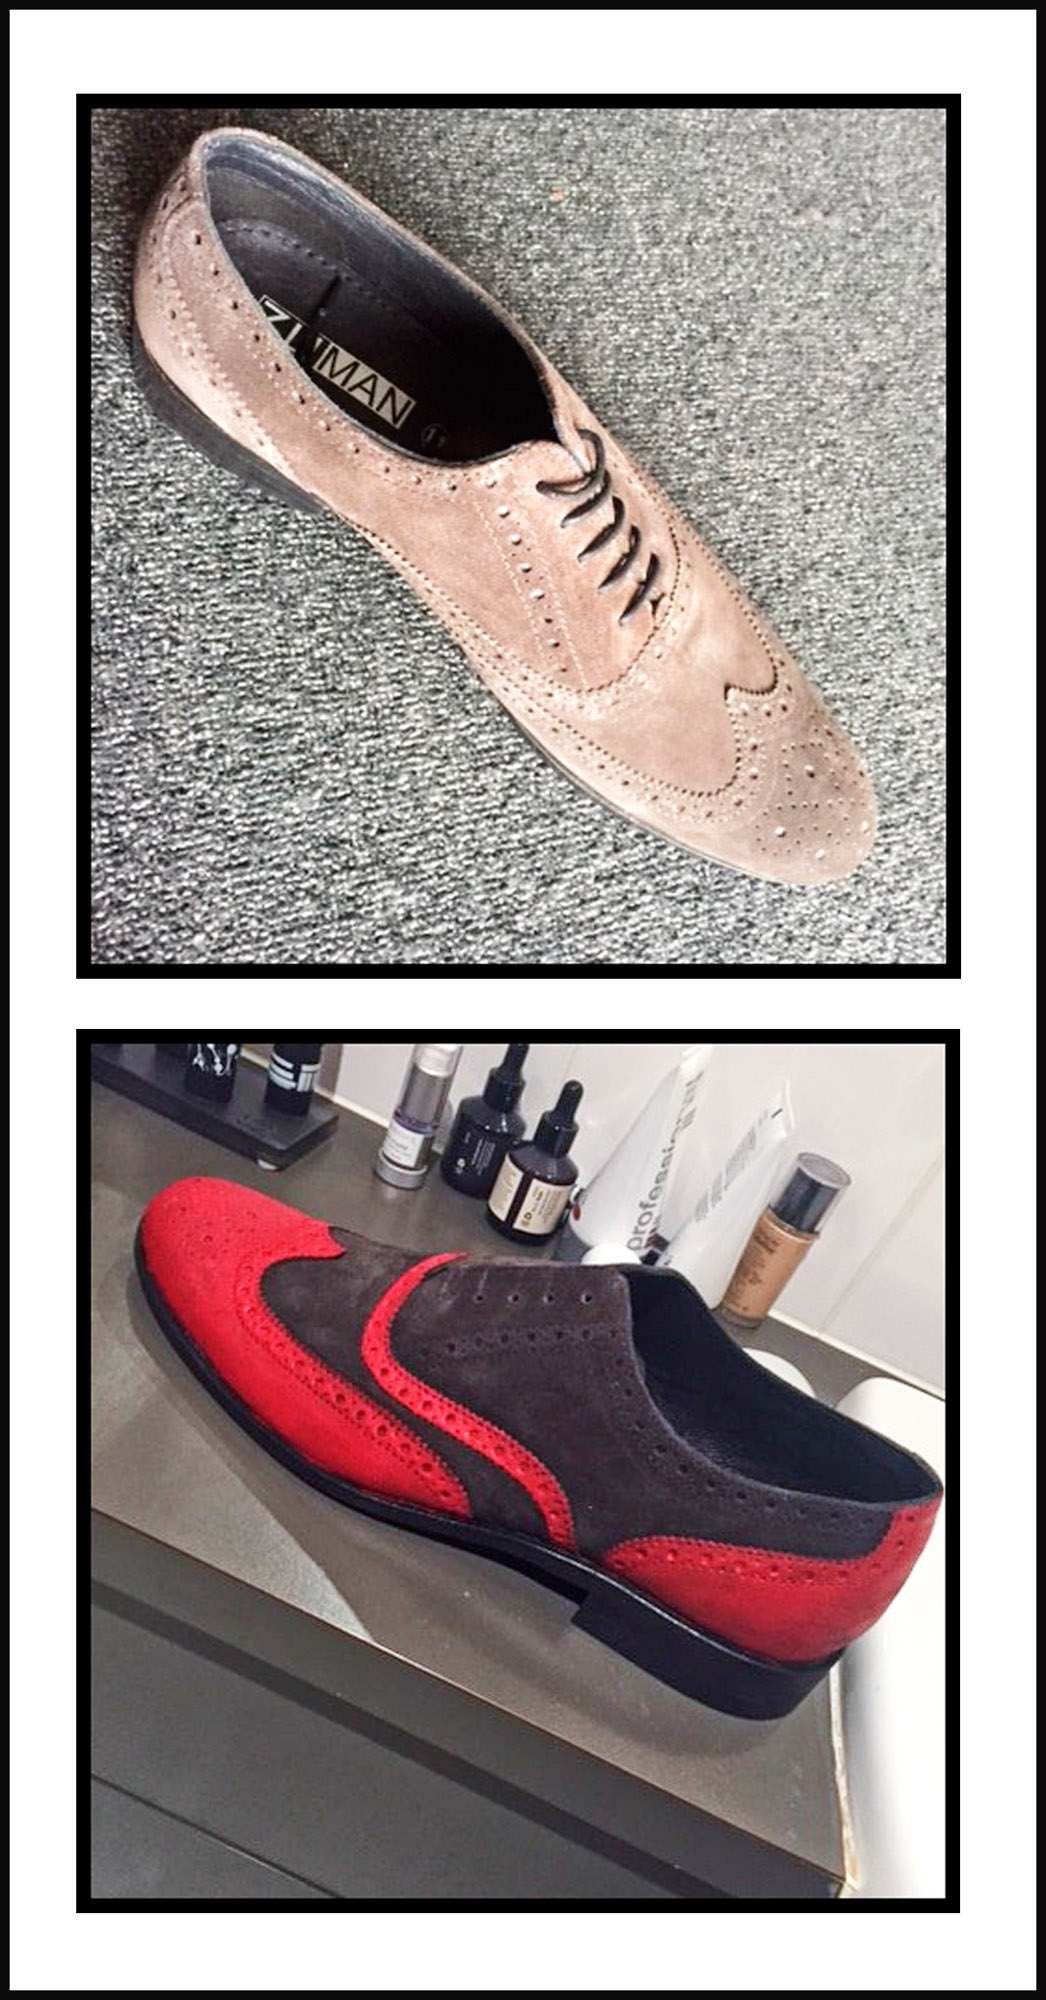 Kanens red shoe makeover